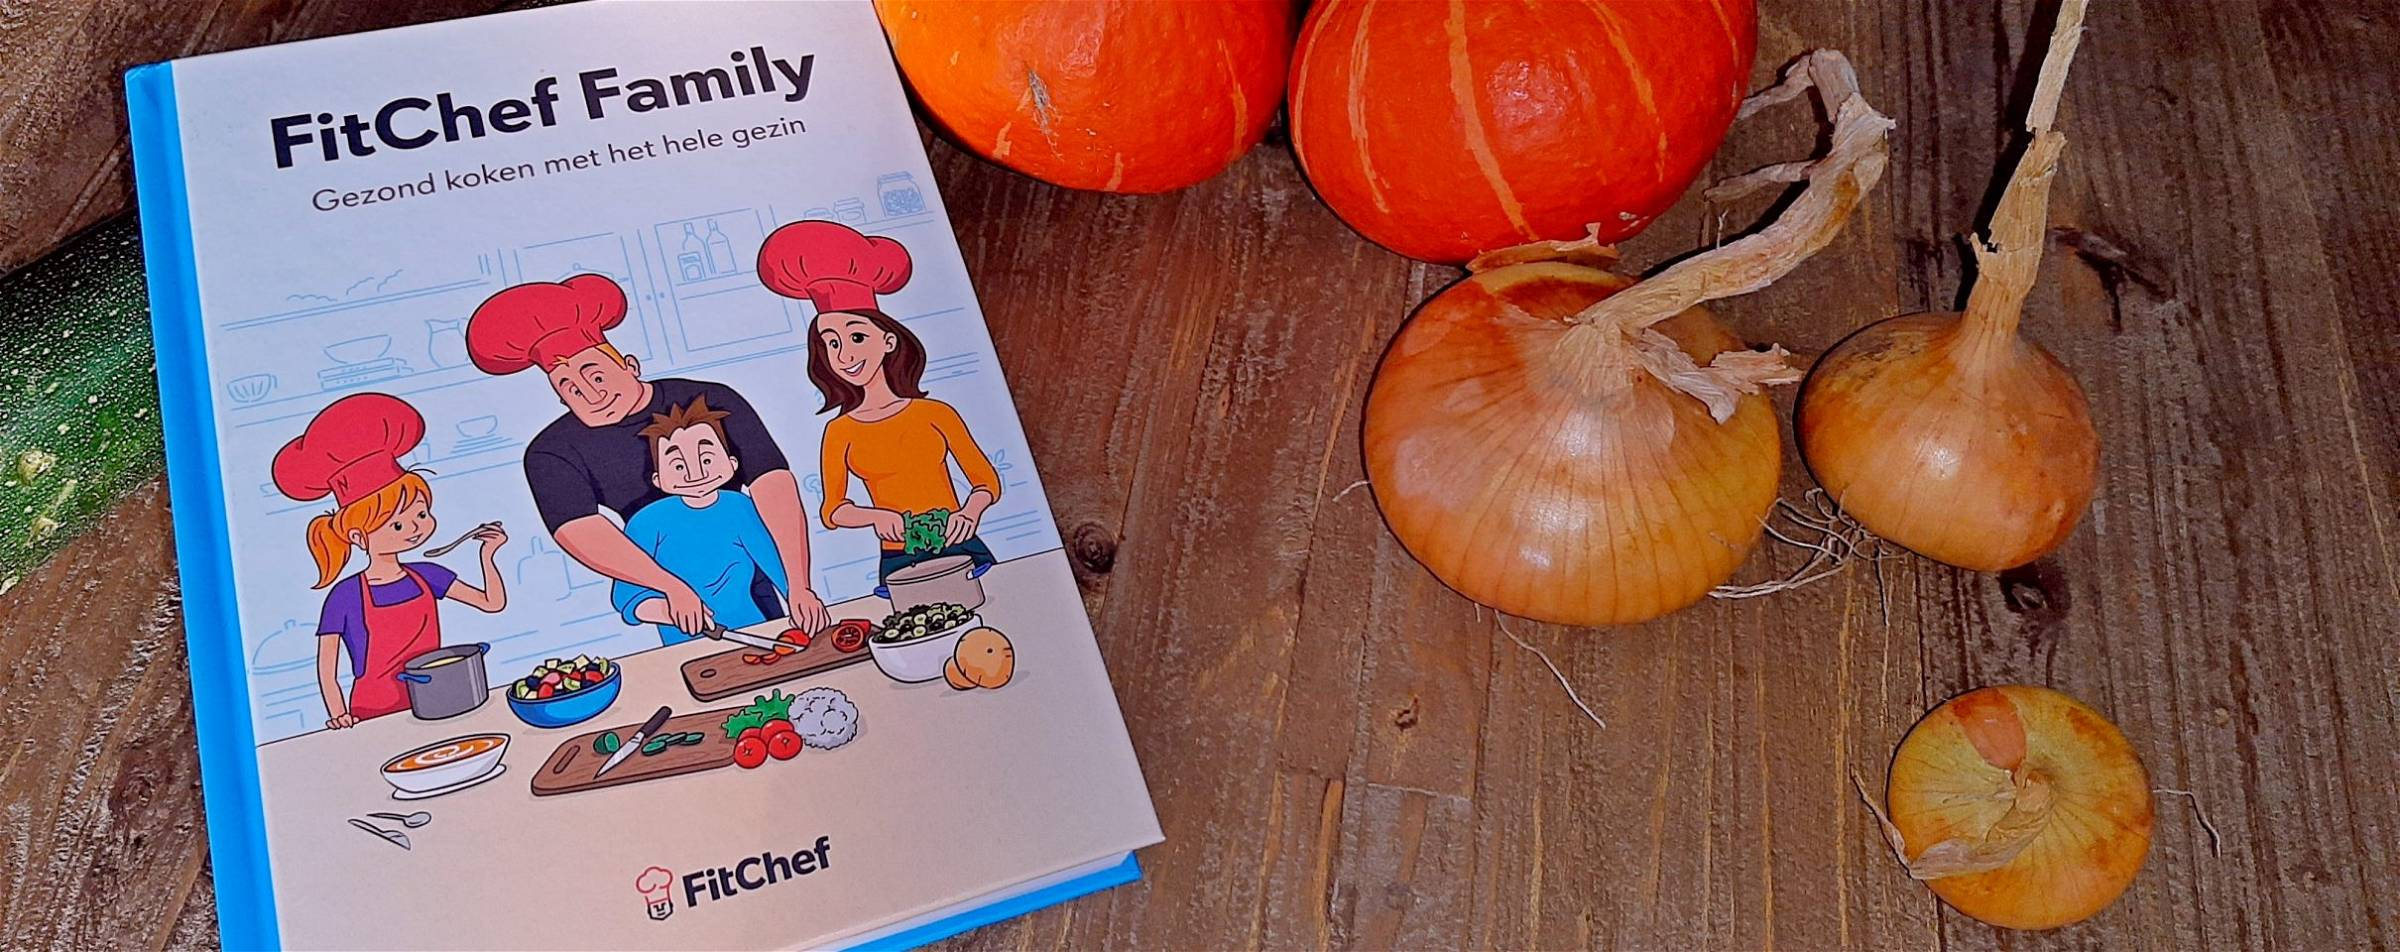 recensie fitchef family